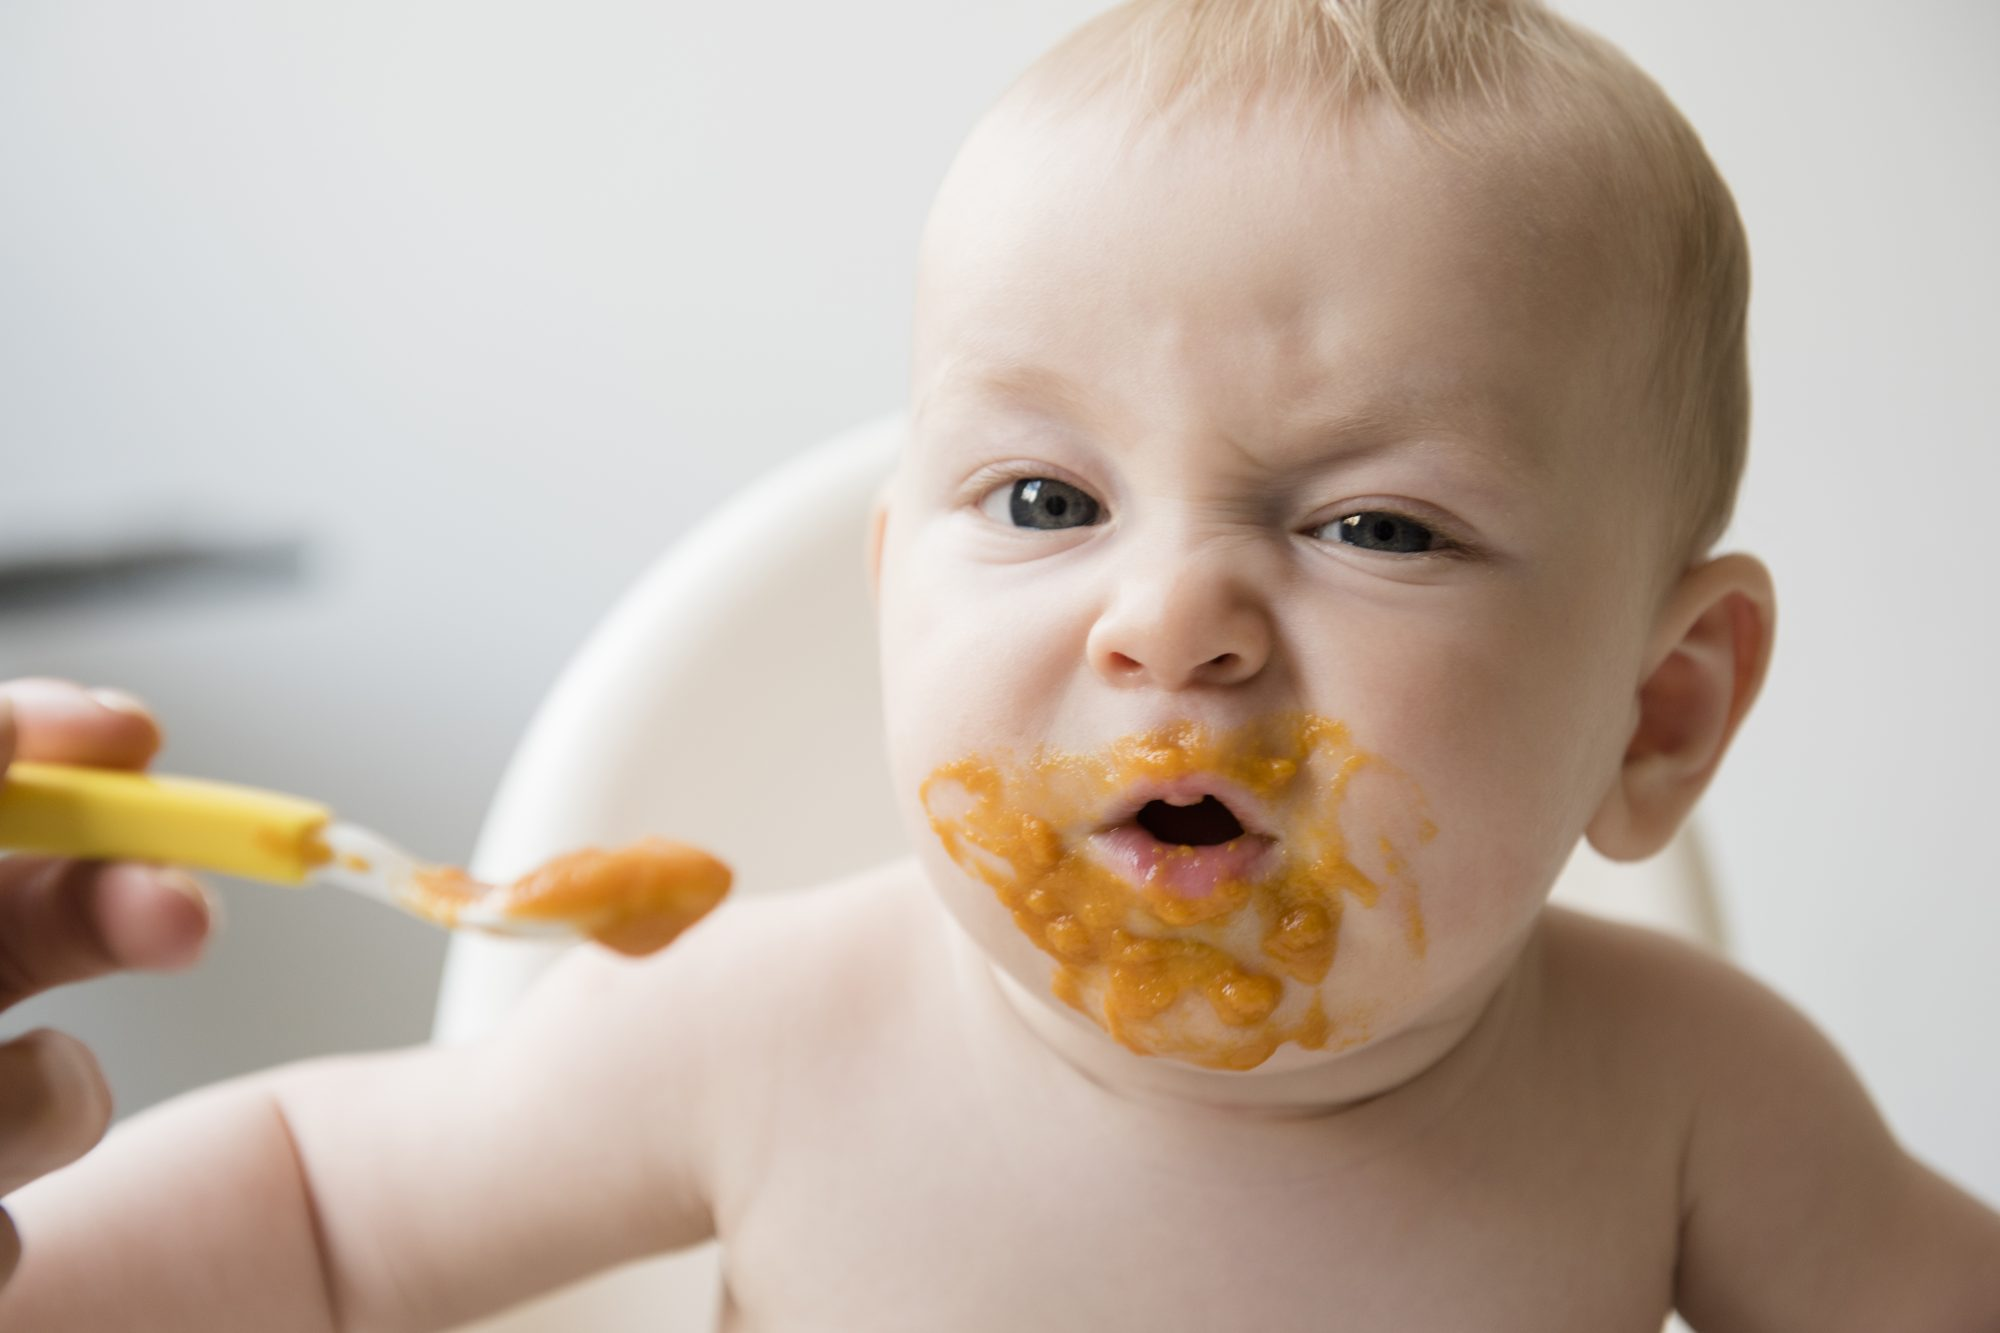 95% of Tested Baby Foods in the U.S. Had Toxic Metals, Study Finds